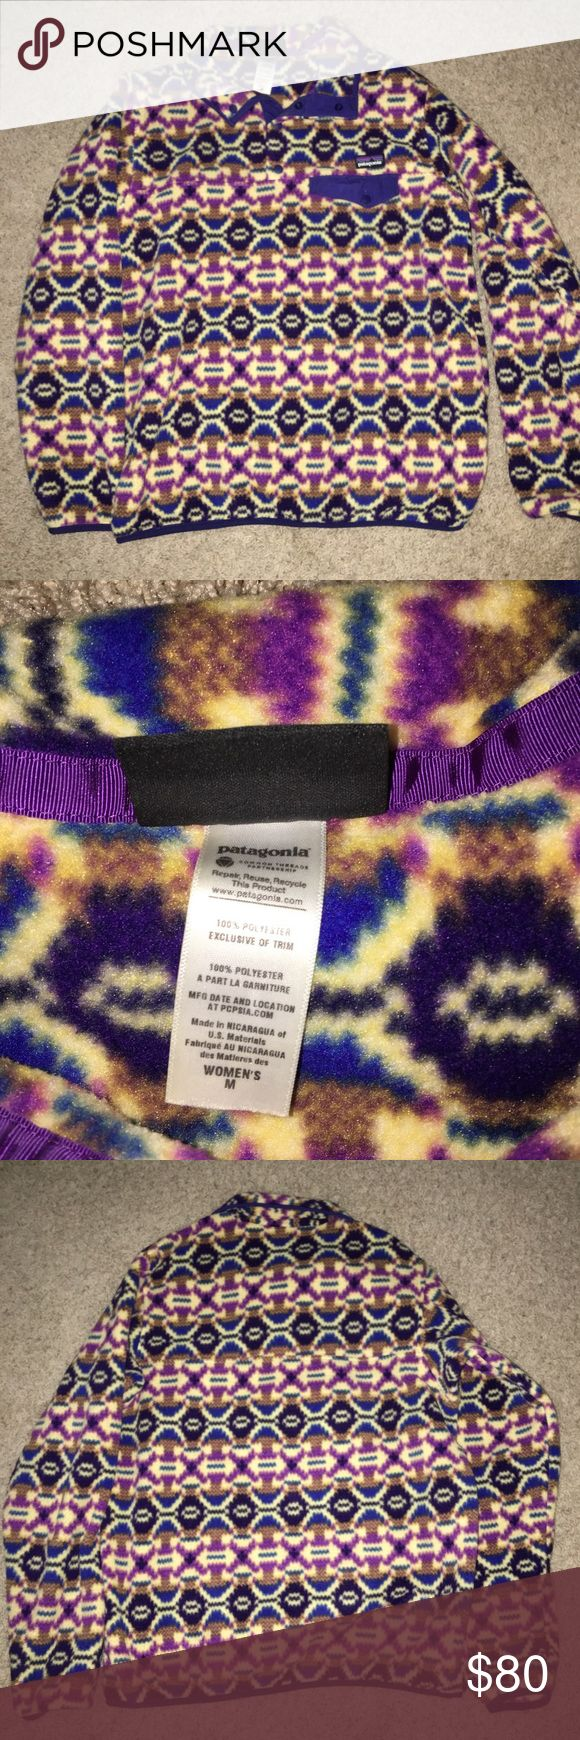 Worn once tribal print patterned pullover Cute Patagonia pullover, worn once, in perfect condition!! Patagonia Jackets & Coats